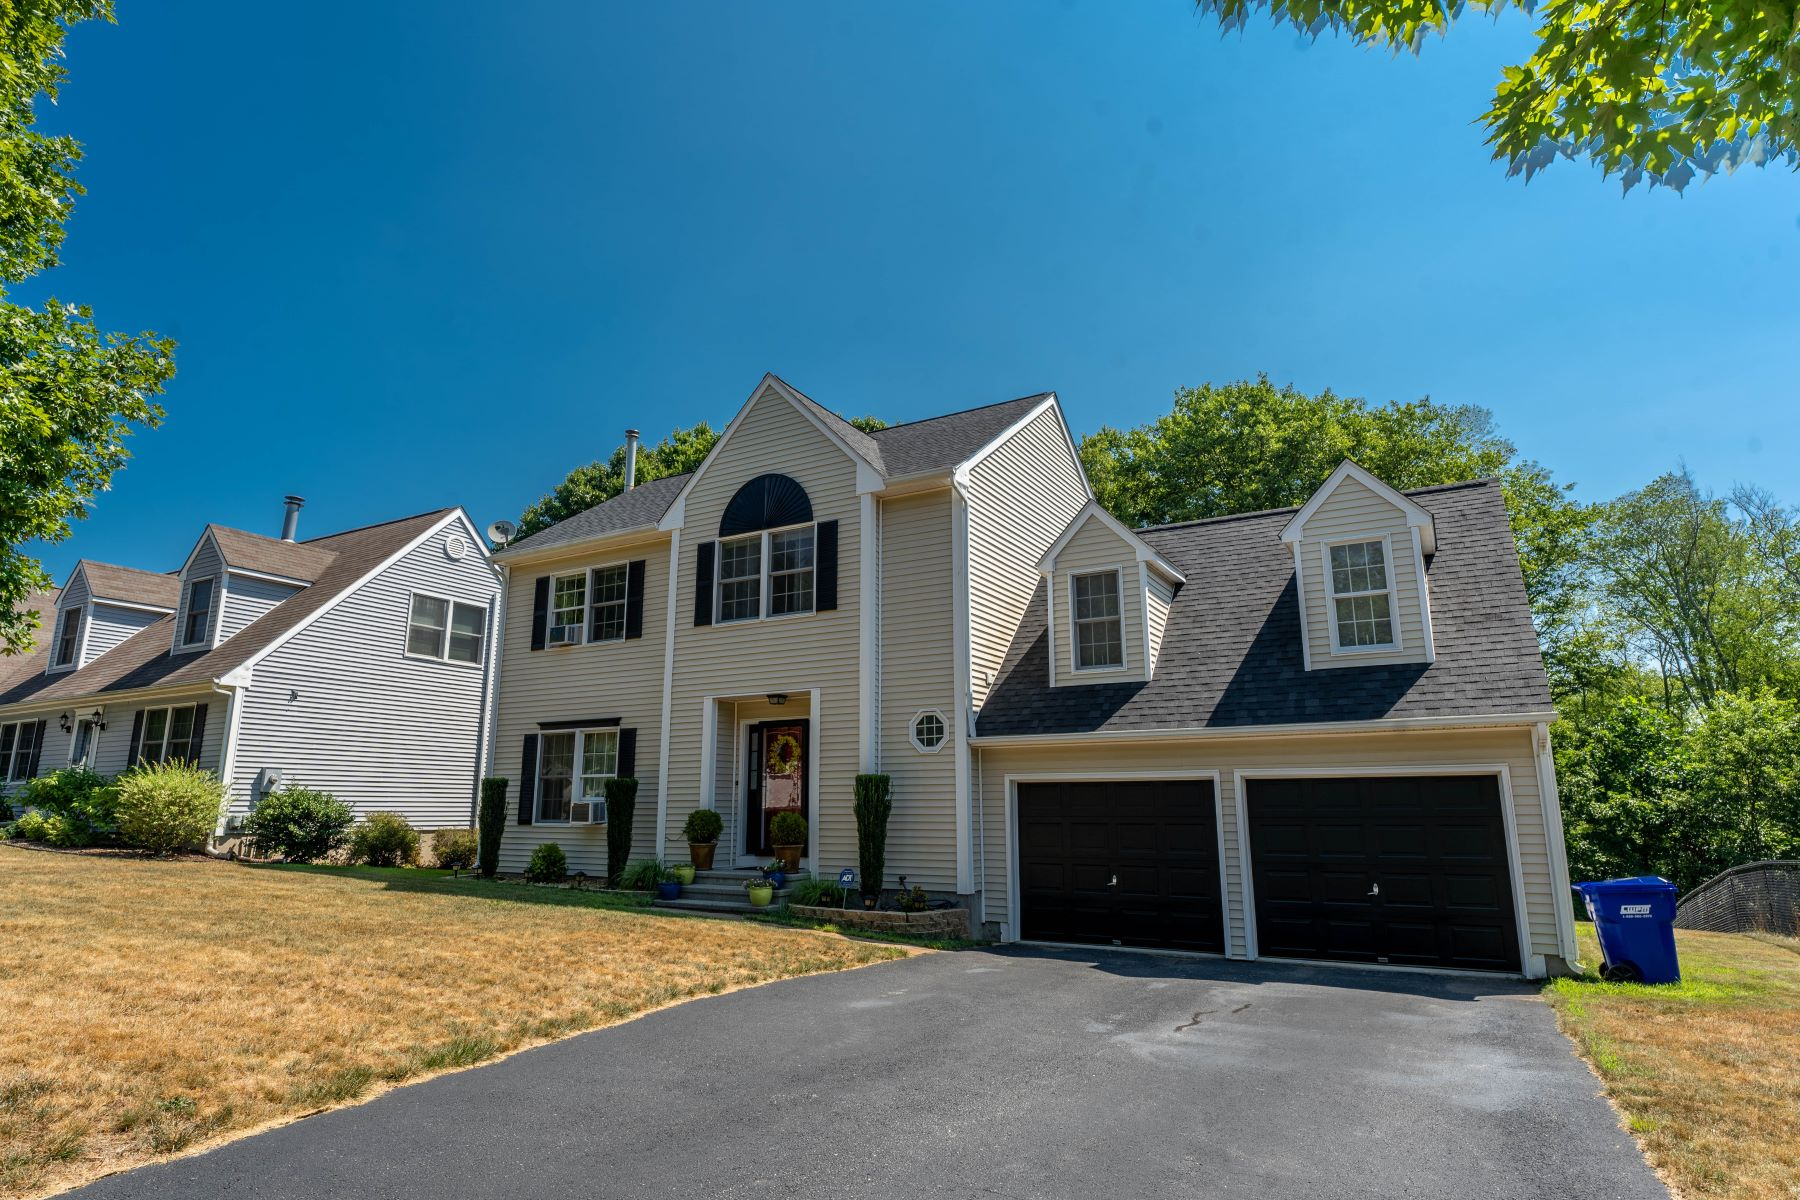 Single Family Homes for Sale at Welcome to Mystic CT 130 Heather Glen Lane Groton, Connecticut 06355 United States